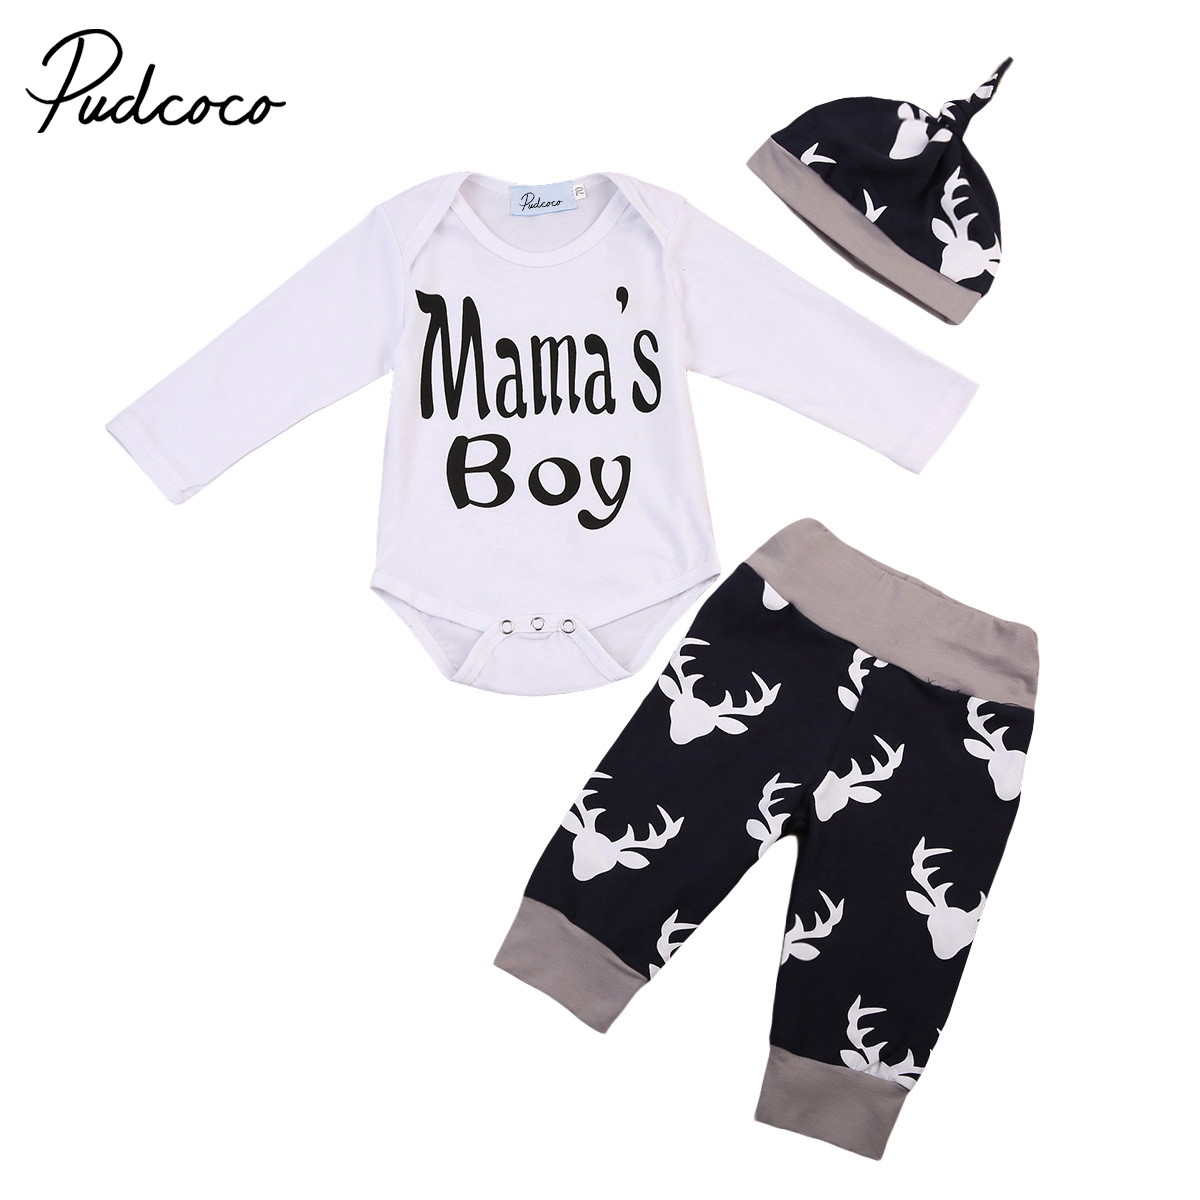 Pudcoco Newborn Autumn Infant Baby Boys Tops Romper+Deer Pants Christmas Leggings Outfit Winter Clothes 0-18M